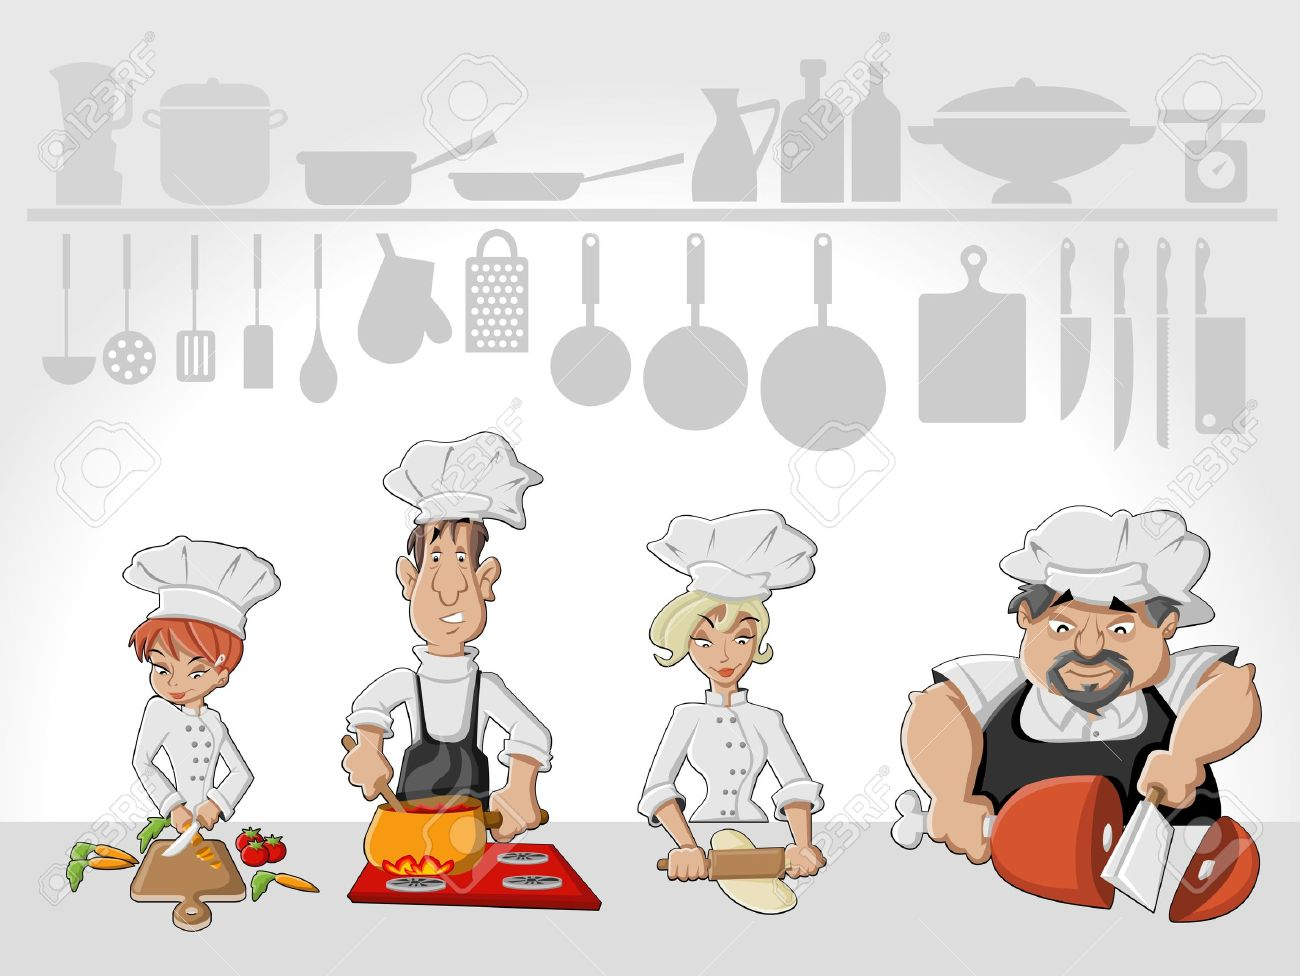 Restaurant Kitchen Illustration chef team cooking delicious meal in restaurant kitchen gourmet